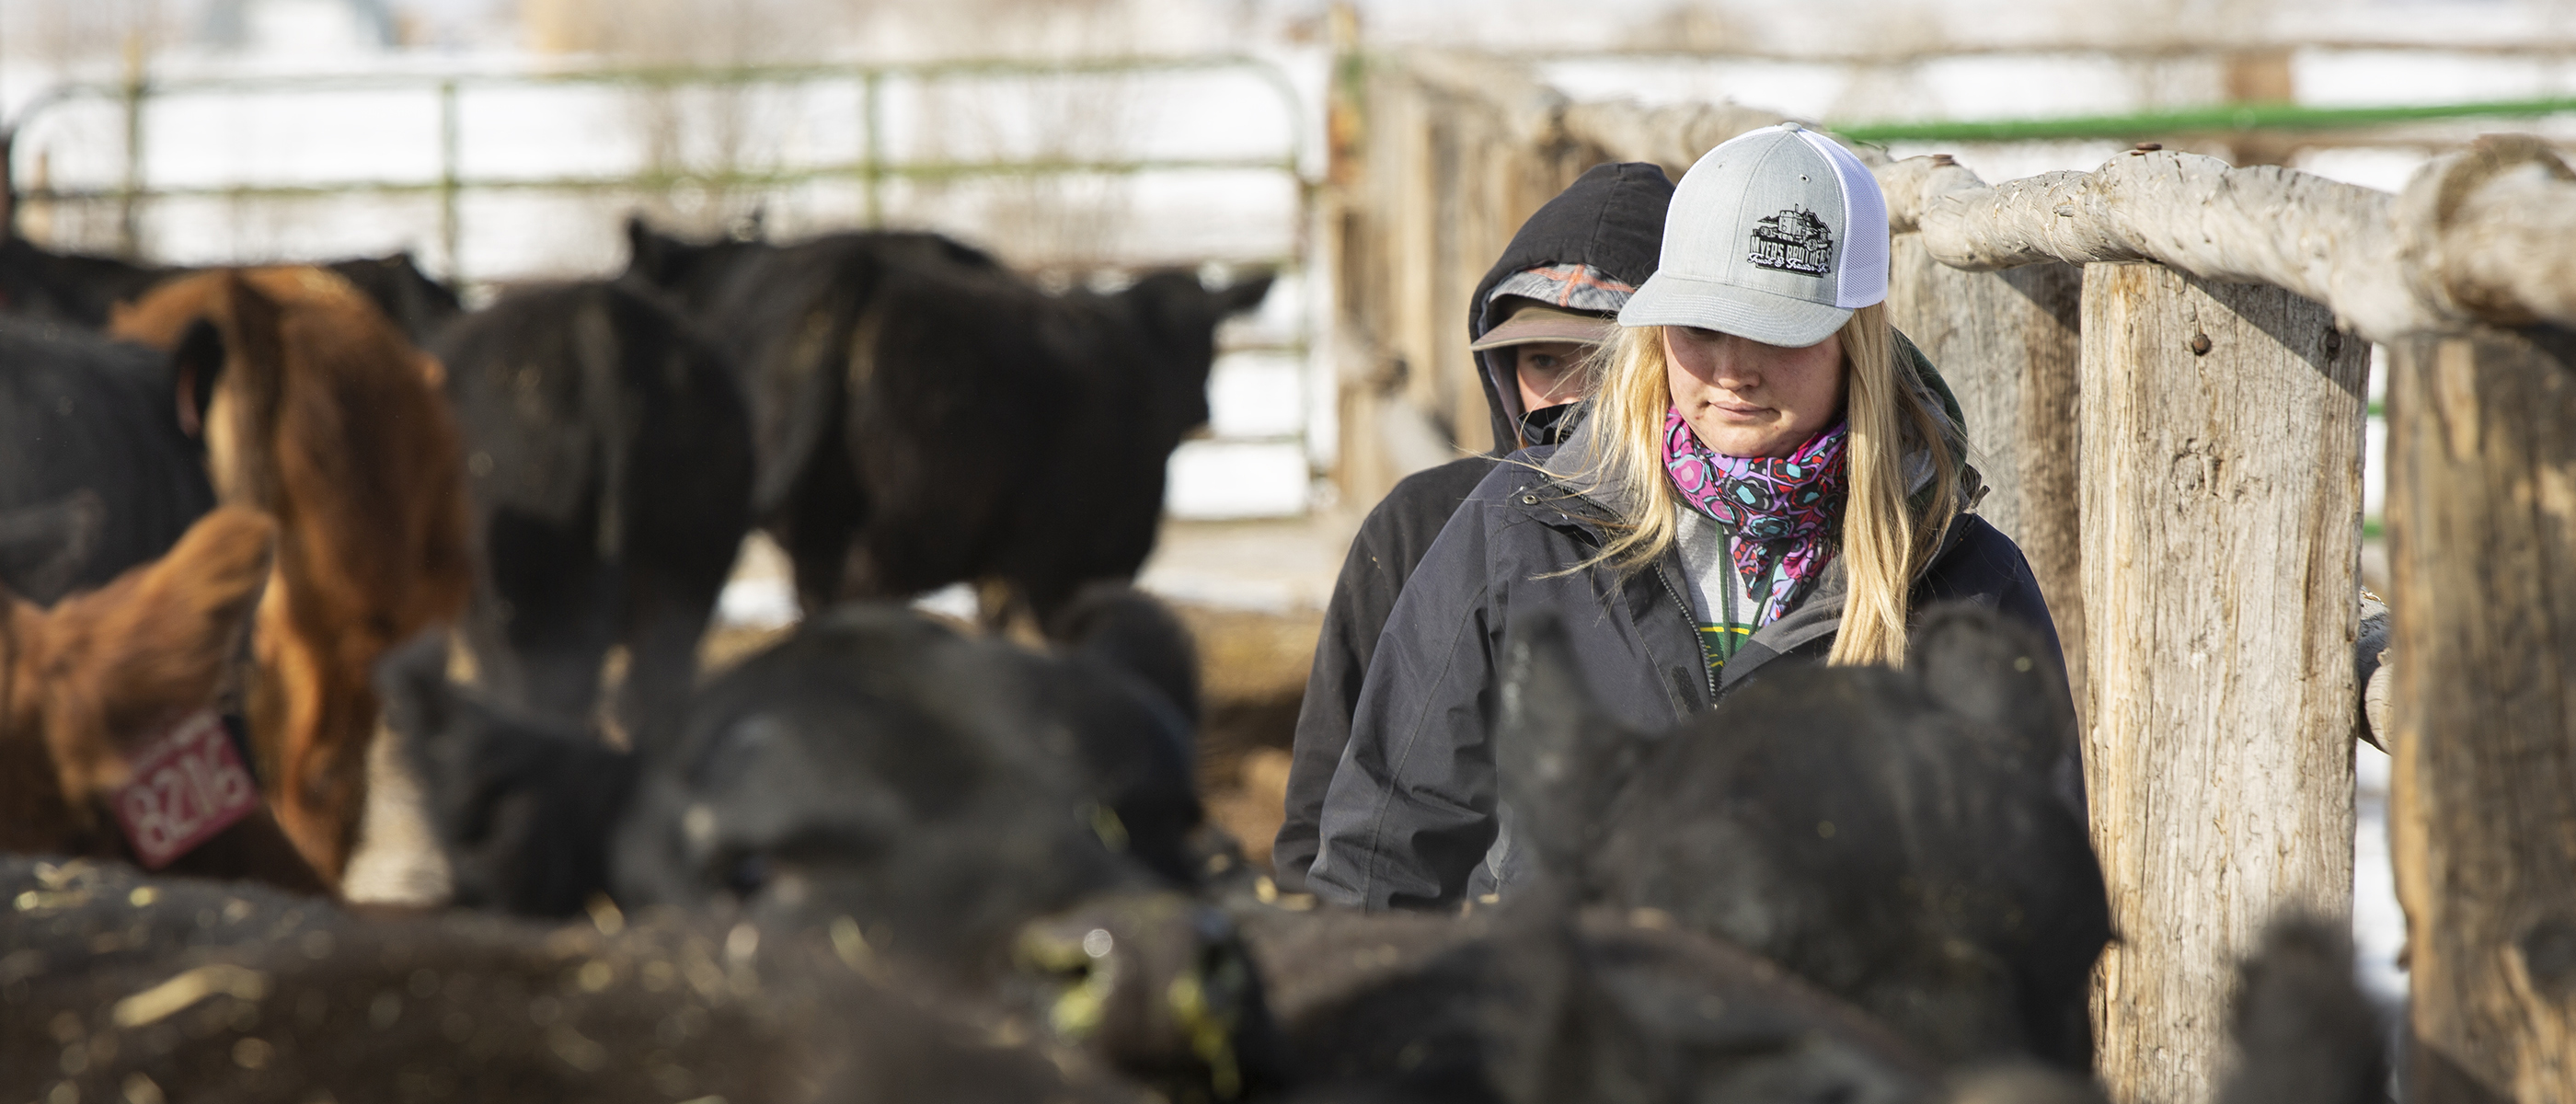 T-Heart Ranch High Altitude Cattle | Working cattle on the high altitude ranch located in Colorado.